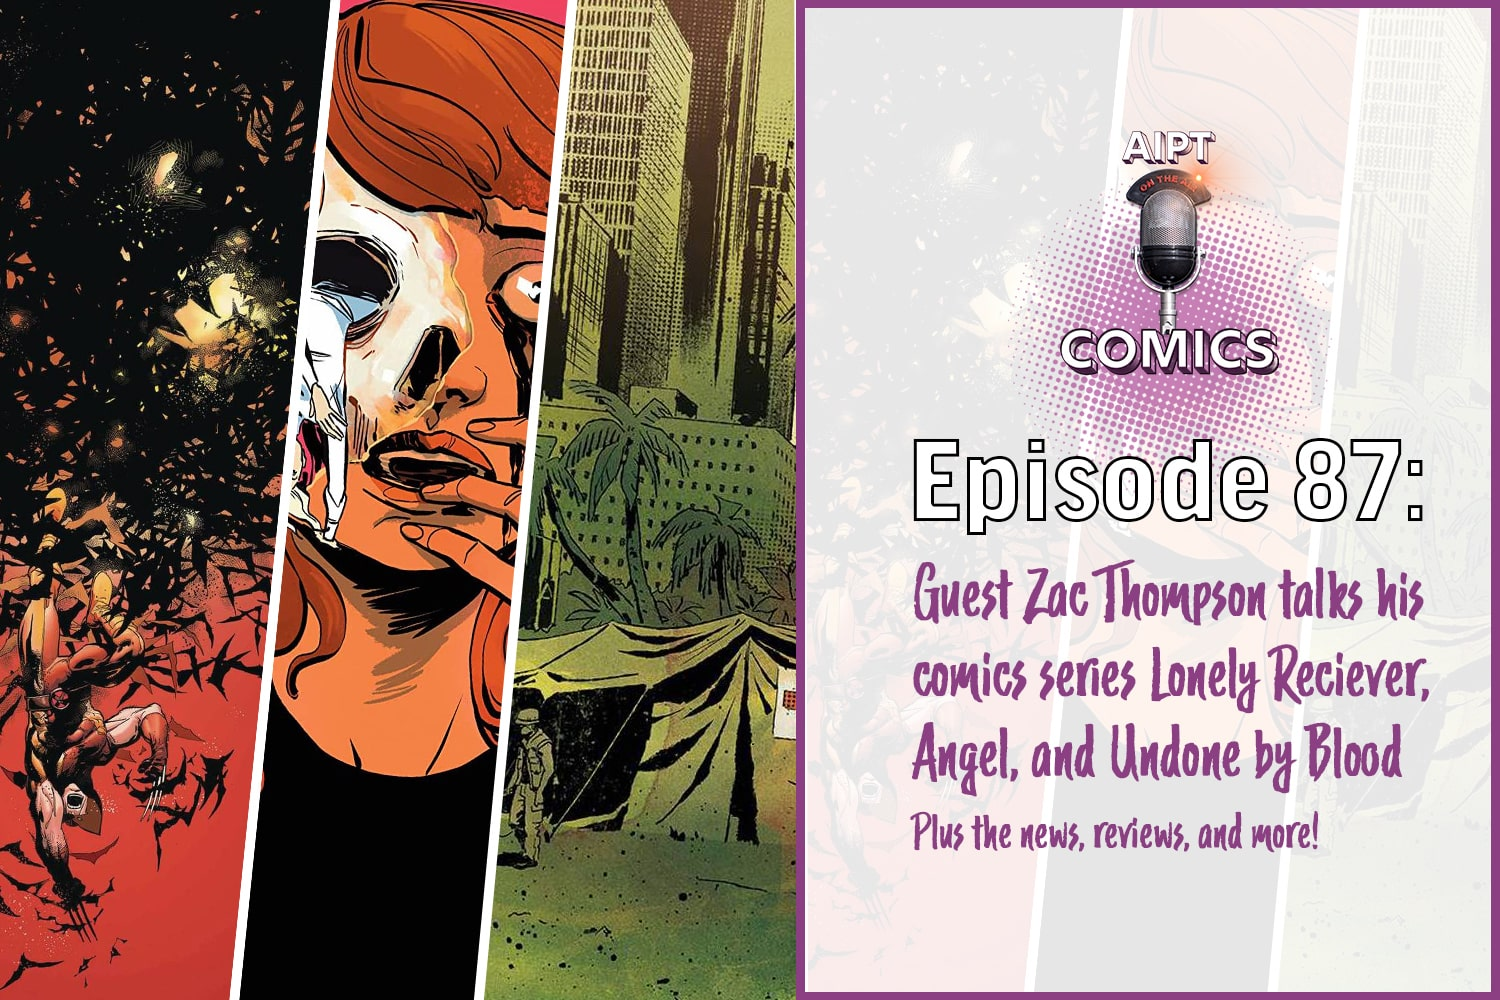 AIPT Comics Podcast Episode 87:  Uncovering 'Lonely Receiver' with series writer Zac Thompson